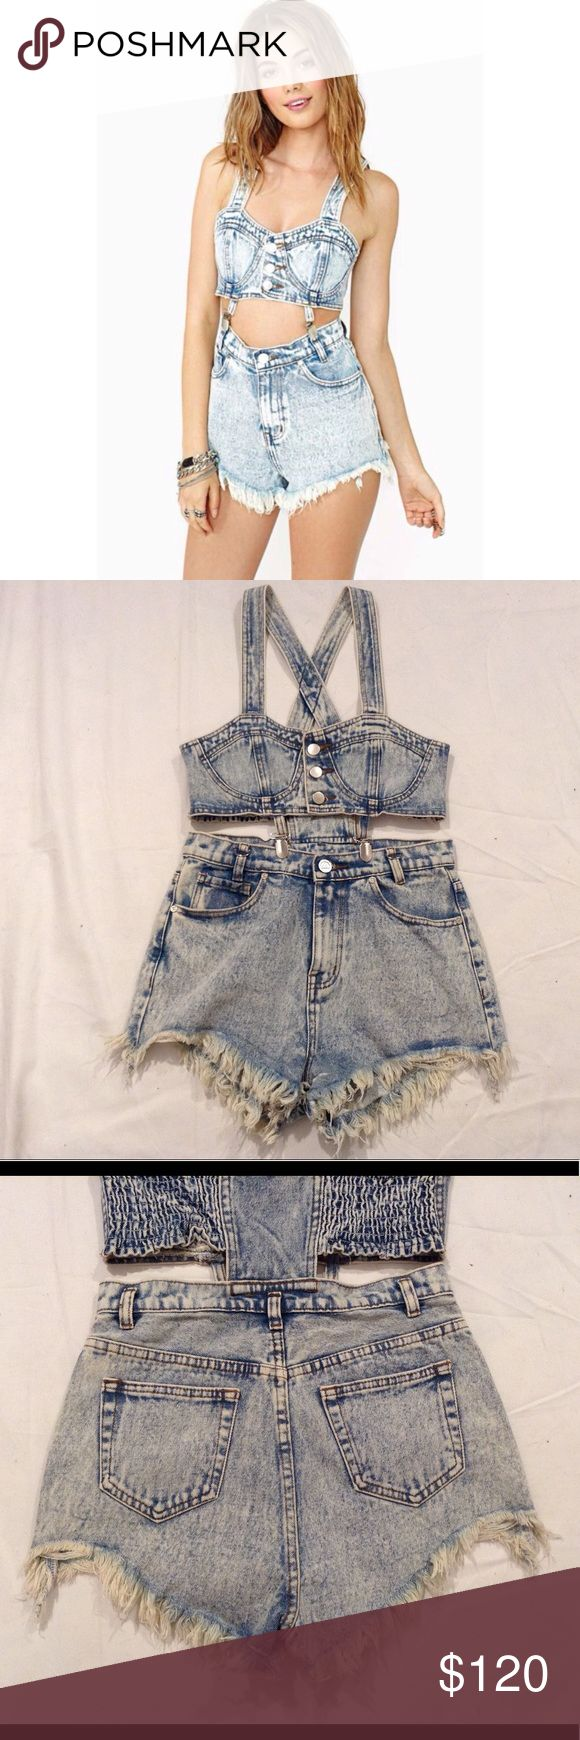 "UNIF Distressed Jean Shorts Bustier Bundy Jumper UNIF Jean jumper. Distressed/frayed jean shorts and bustier crop top. Suspender clips in front. Size M. Shorts waist measures approx. 14"" across laid flat. Stretchy elastic on the back of the bustier crop top. Worn once. Offers welcome! UNIF Dresses"